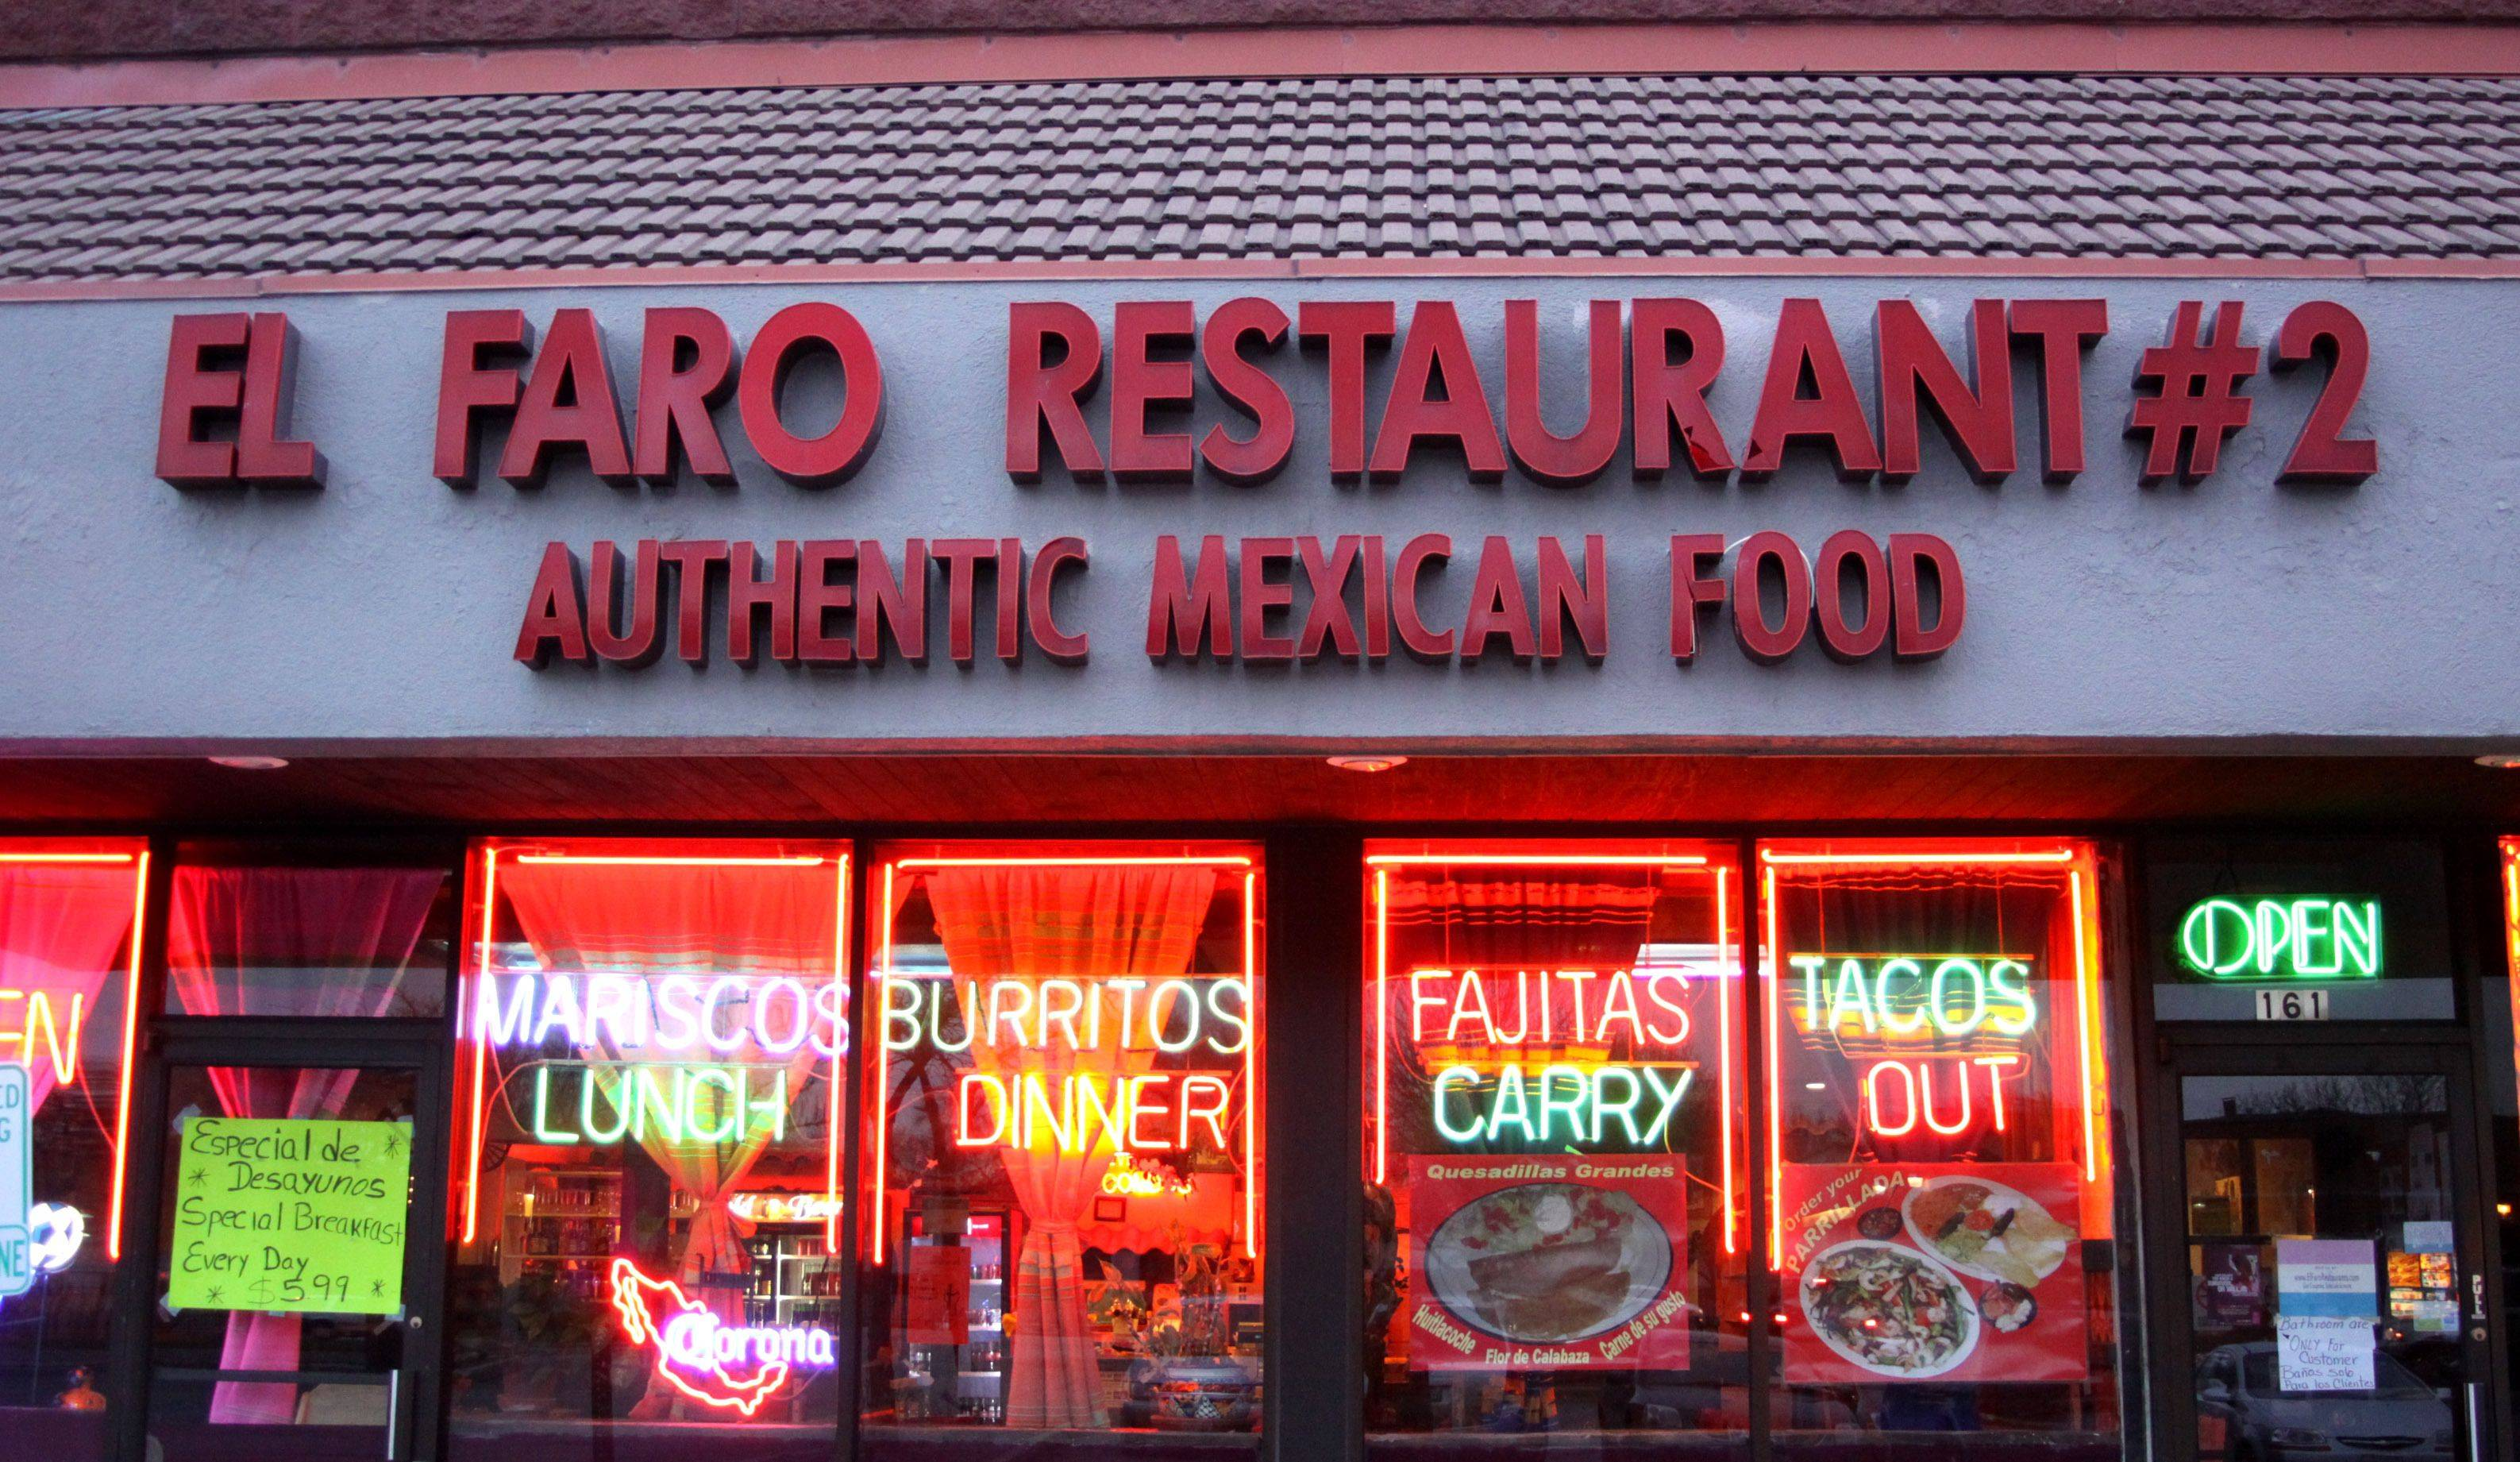 The El Faro Restaurant #2 is on Lake Street in Bartlett. The locally owned chain has several outlets in the Western suburbs.